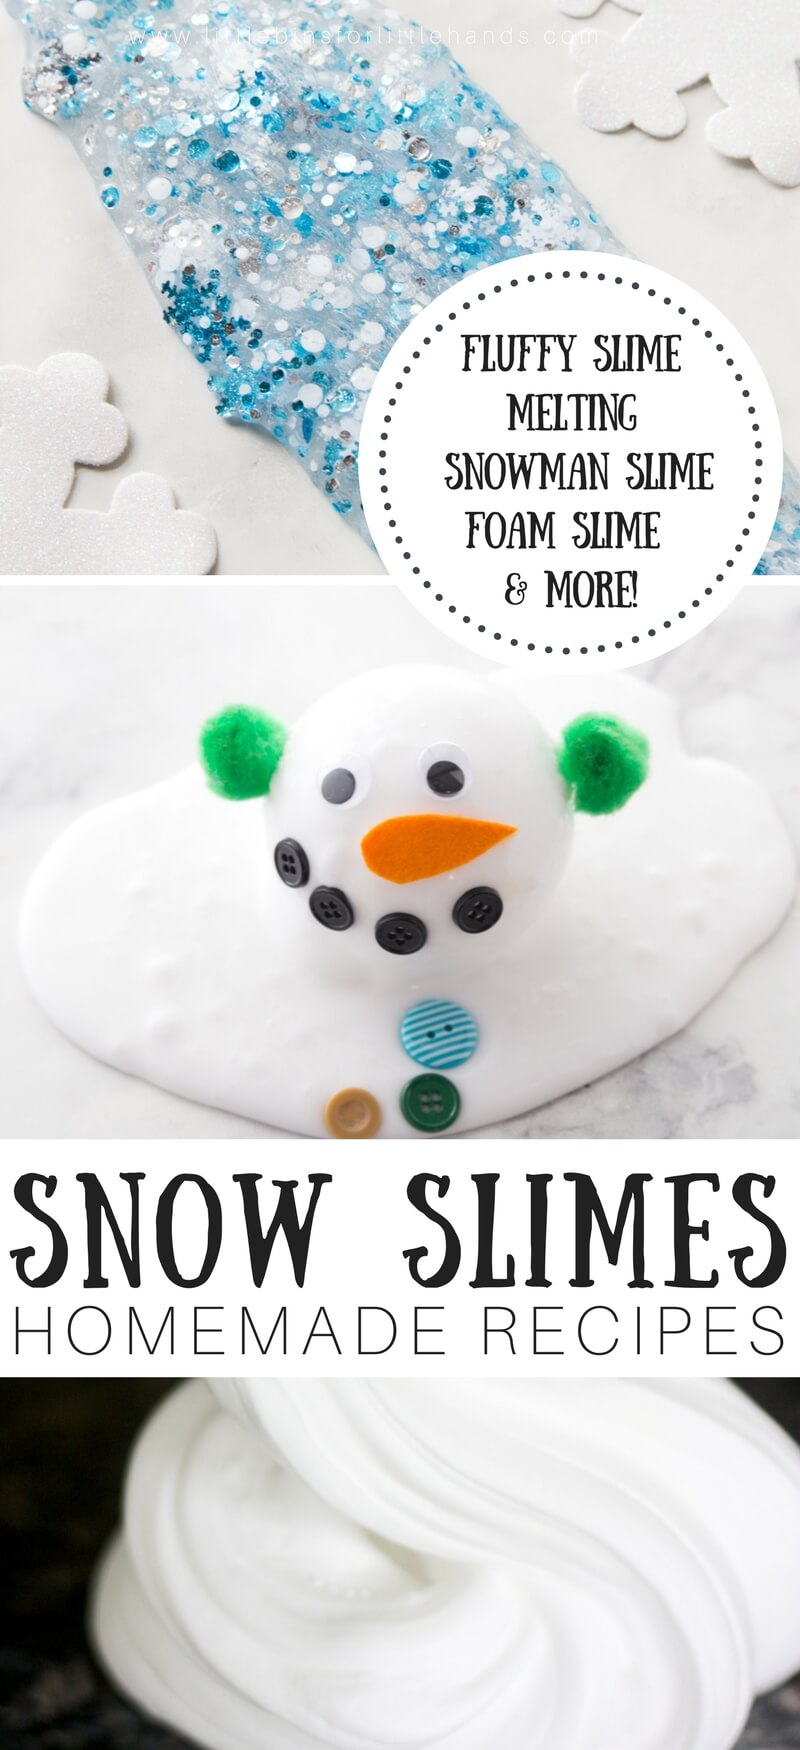 Learn how to make snow slime for awesome homemade slime this winter. Make melting snowman slime, fluffy snow slime, floam snow slime, snowflake slime, and more! We have easy slime recipe and slime video tutorials to help you make the best slime every time. Fun winter slime at your fingertips.